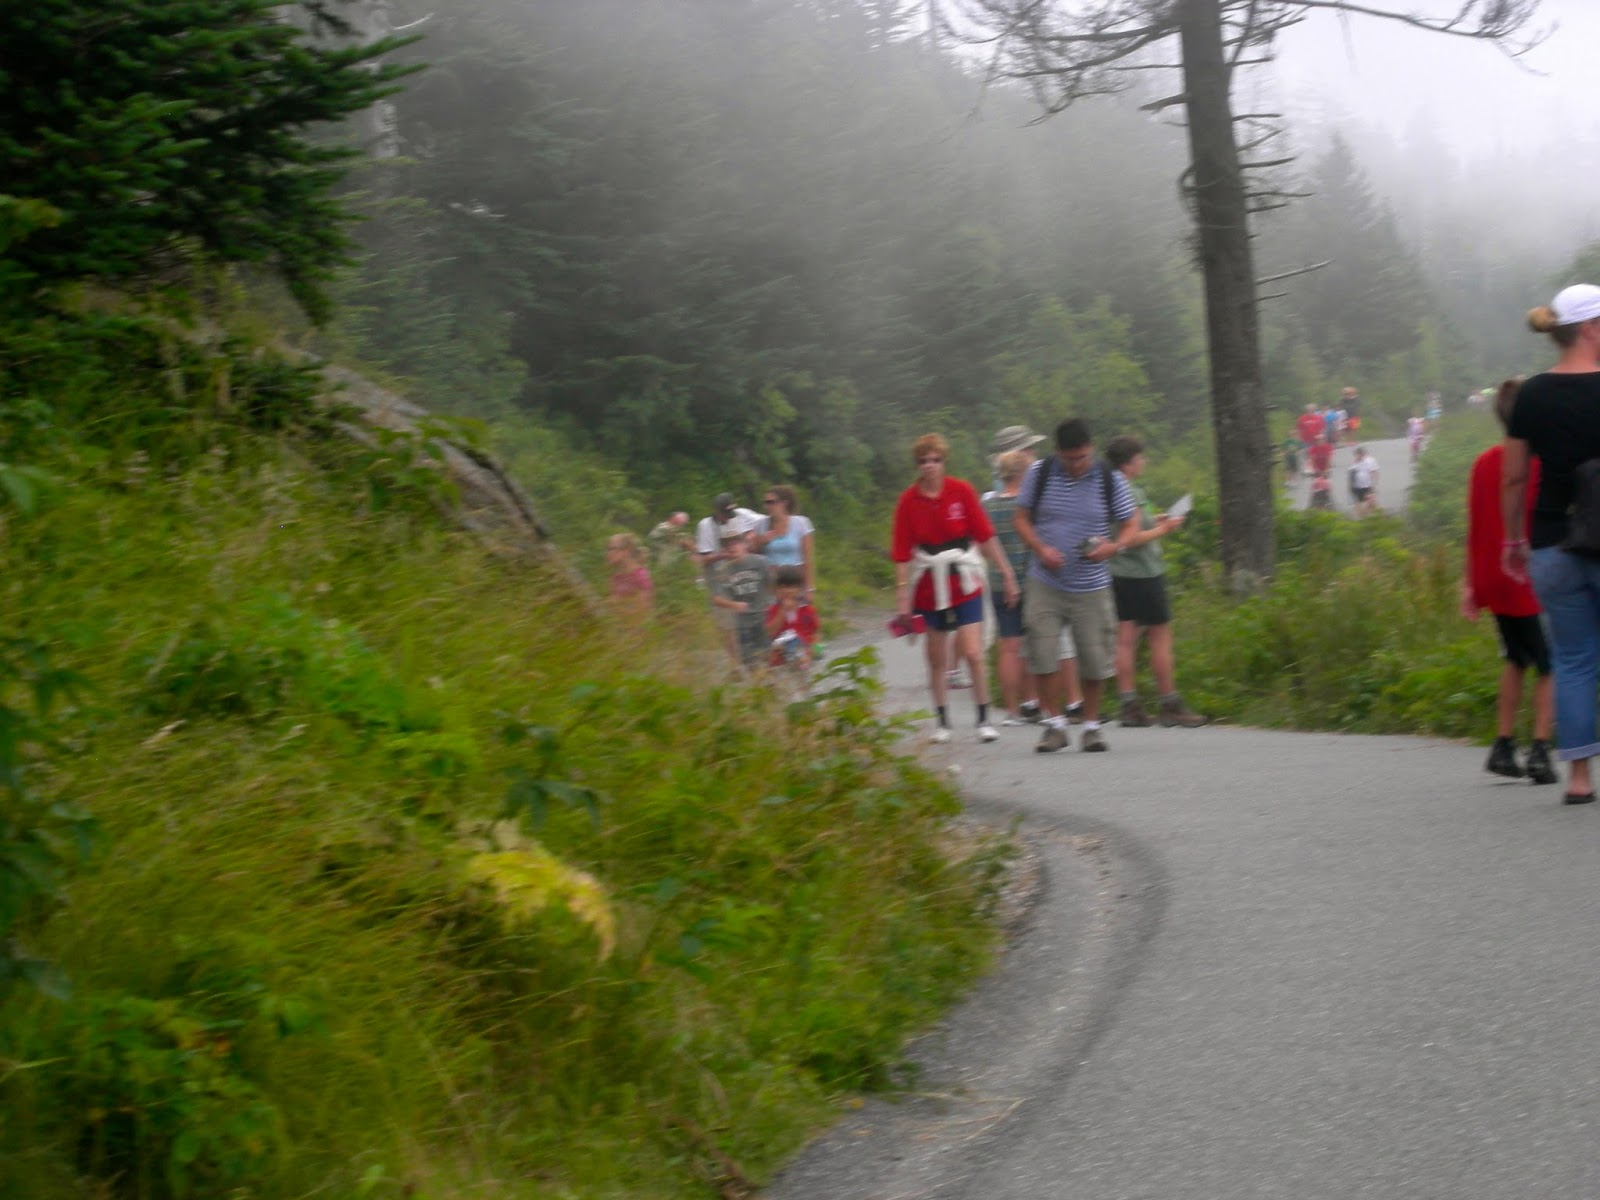 Clingman's Dome Hiking Trail - Smoky Mountains, TN